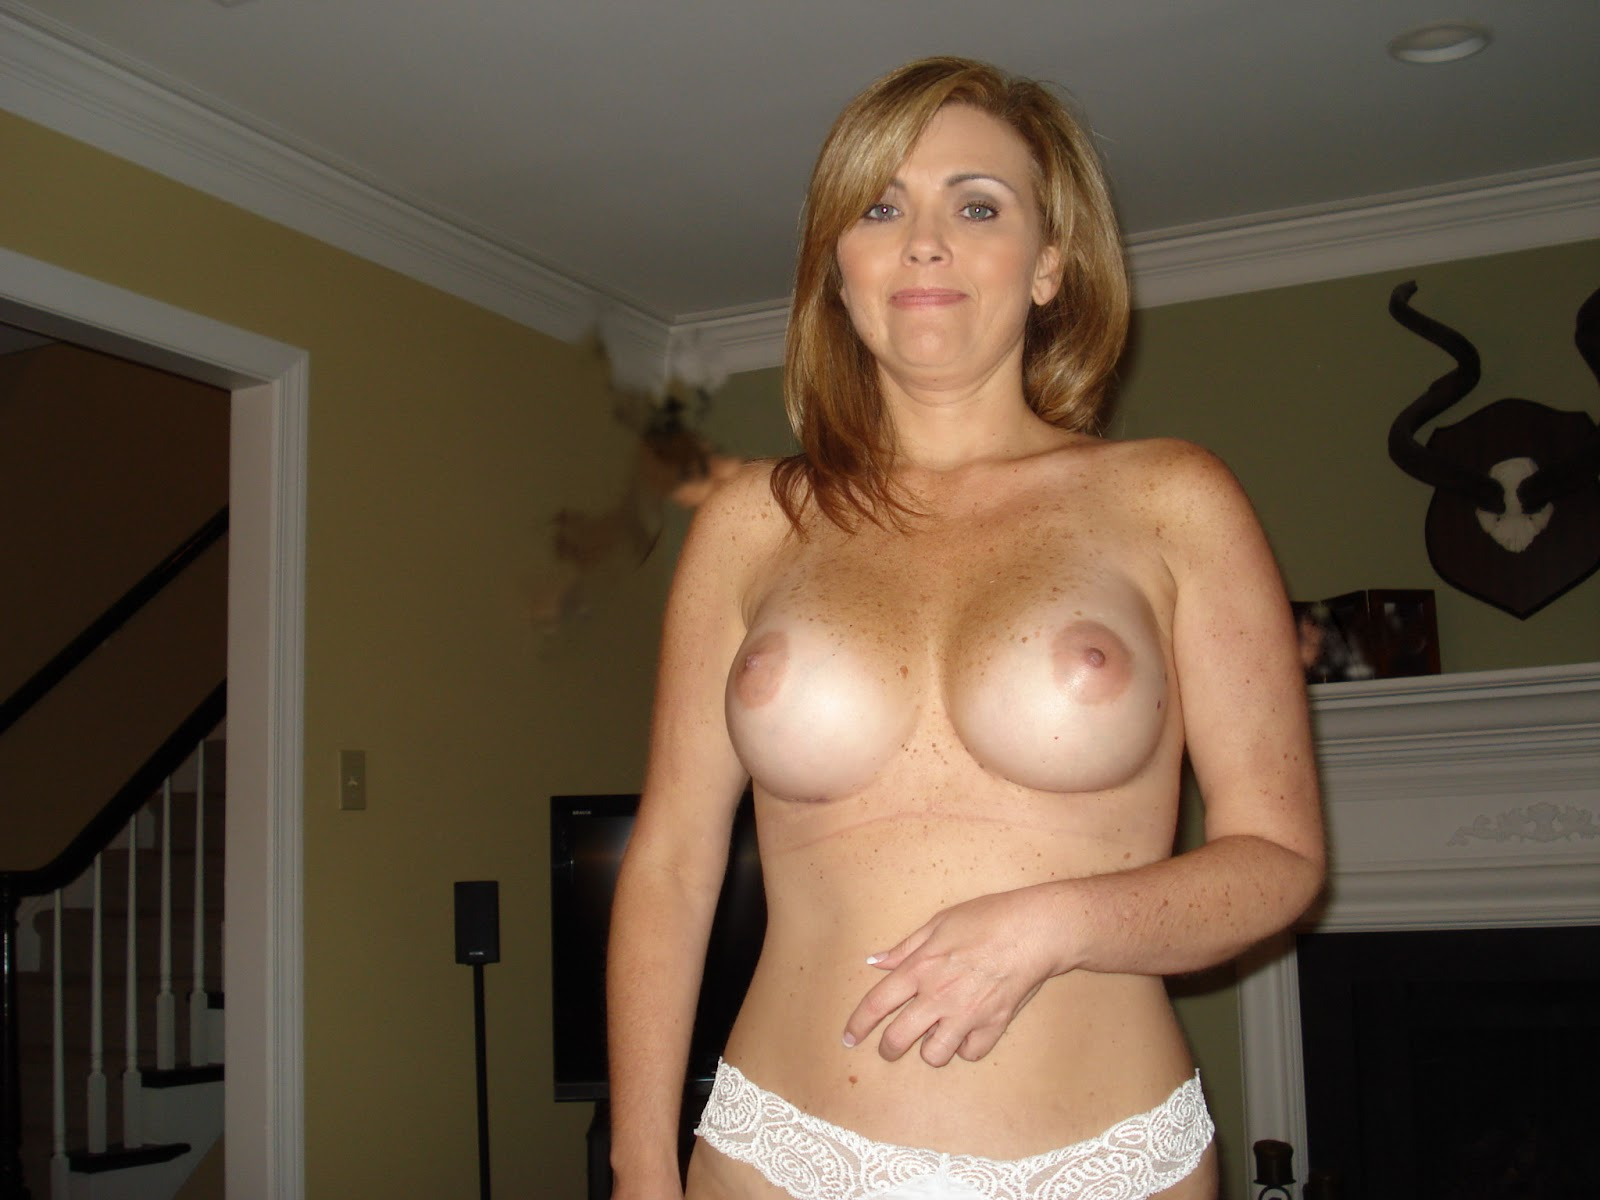 Hot Cougar Plus Amateurmilfs Posing